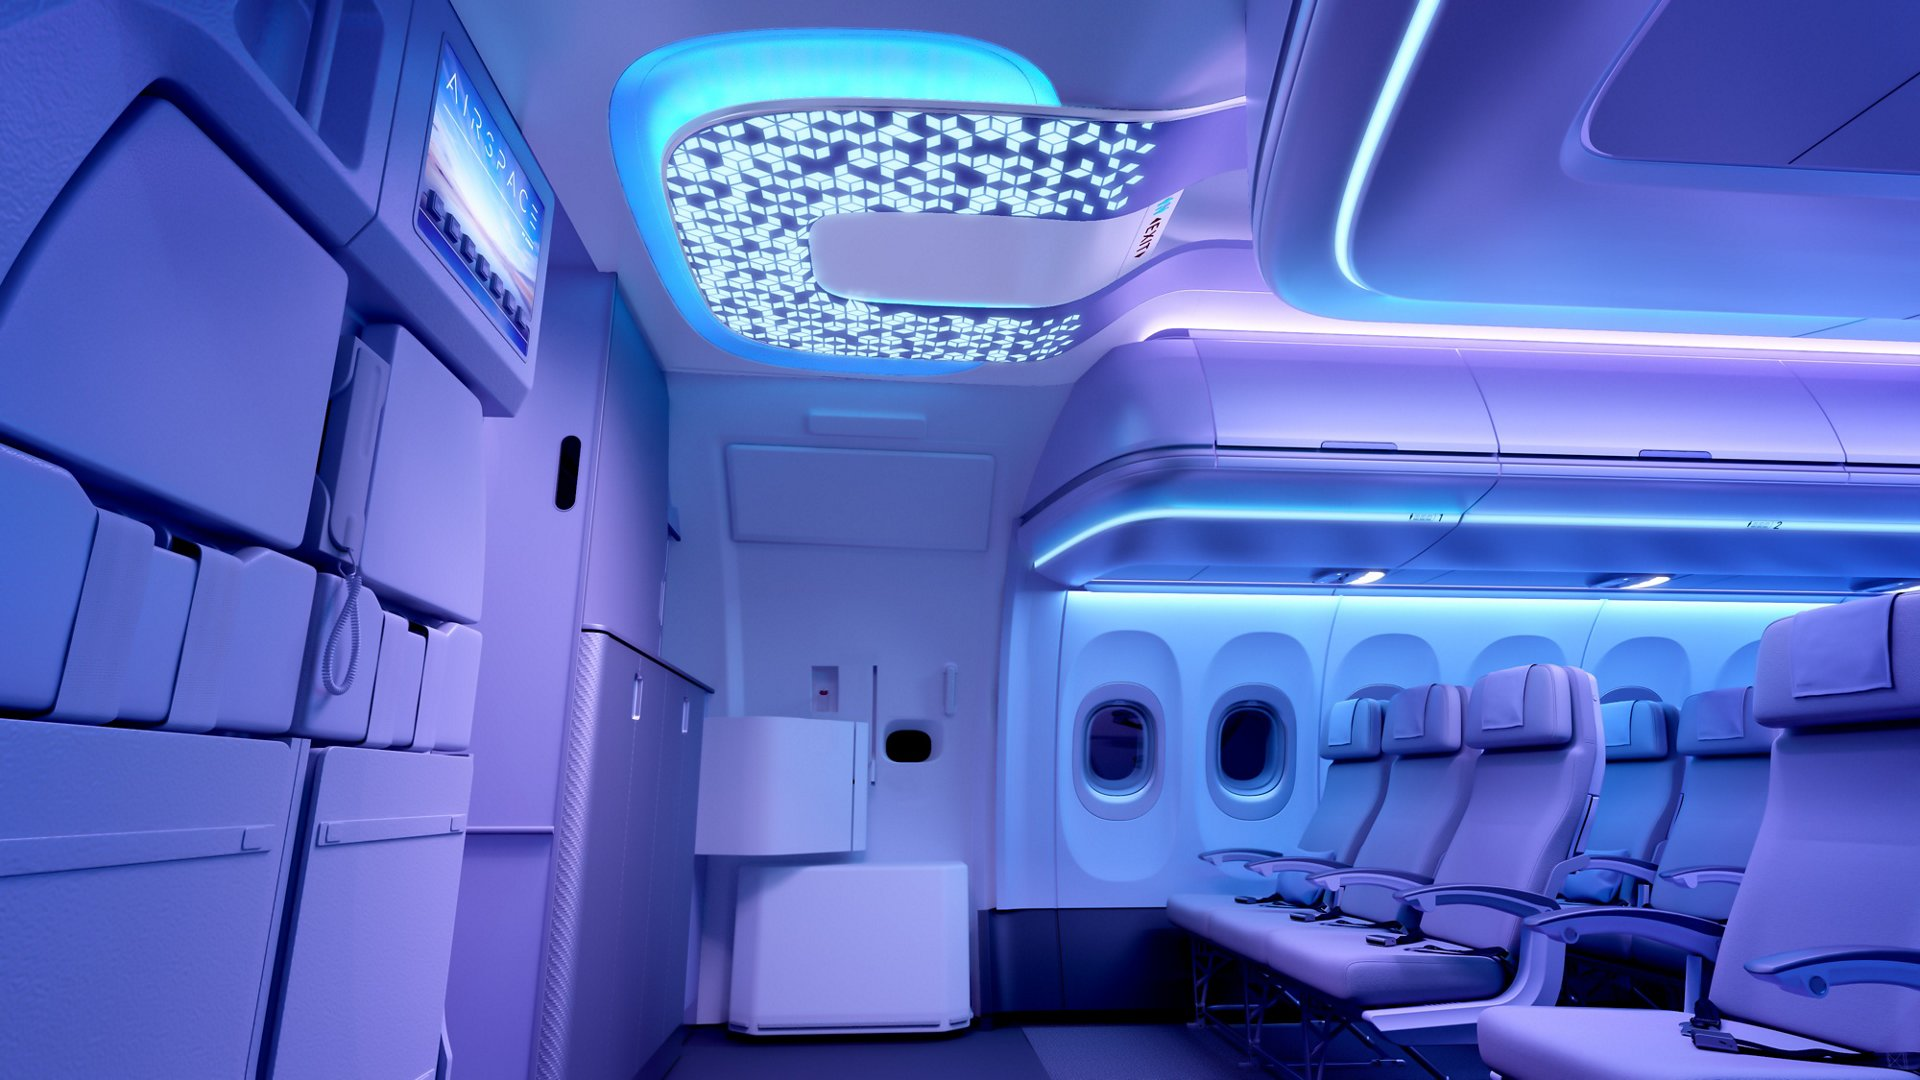 Airspace Cabin A320neo Entrance Area Patterns Night